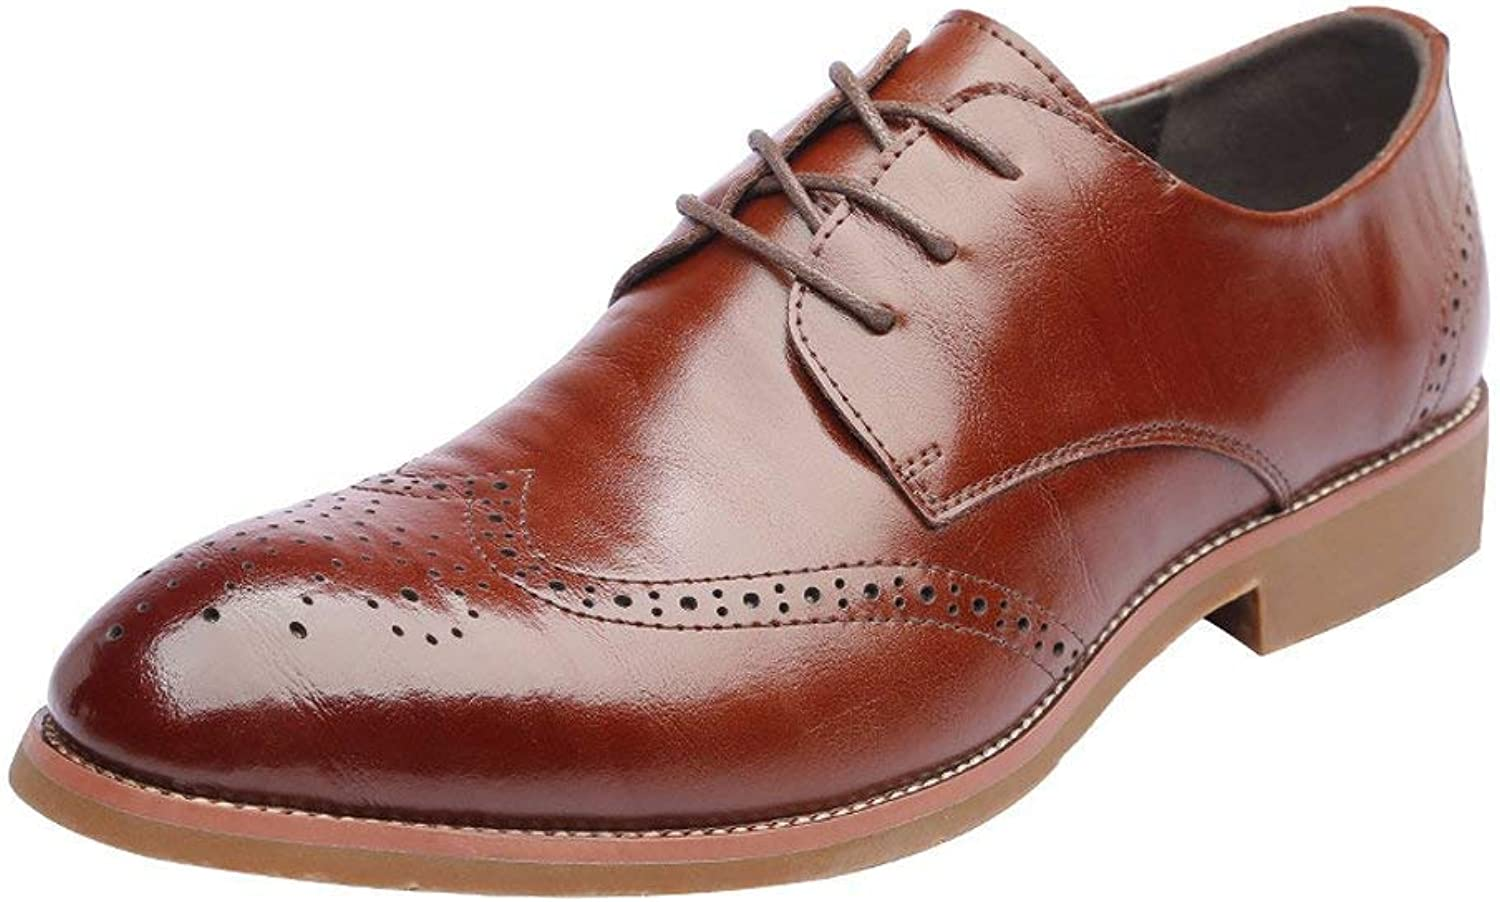 FuweiEncore 2018 Men's Genuine Leather Brogue shoes Wingtip Hollow Carving Lace up Breathable Business Low Top Lined Oxfords (color  Black, Size  43 EU) (color   Brown, Size   43 EU)